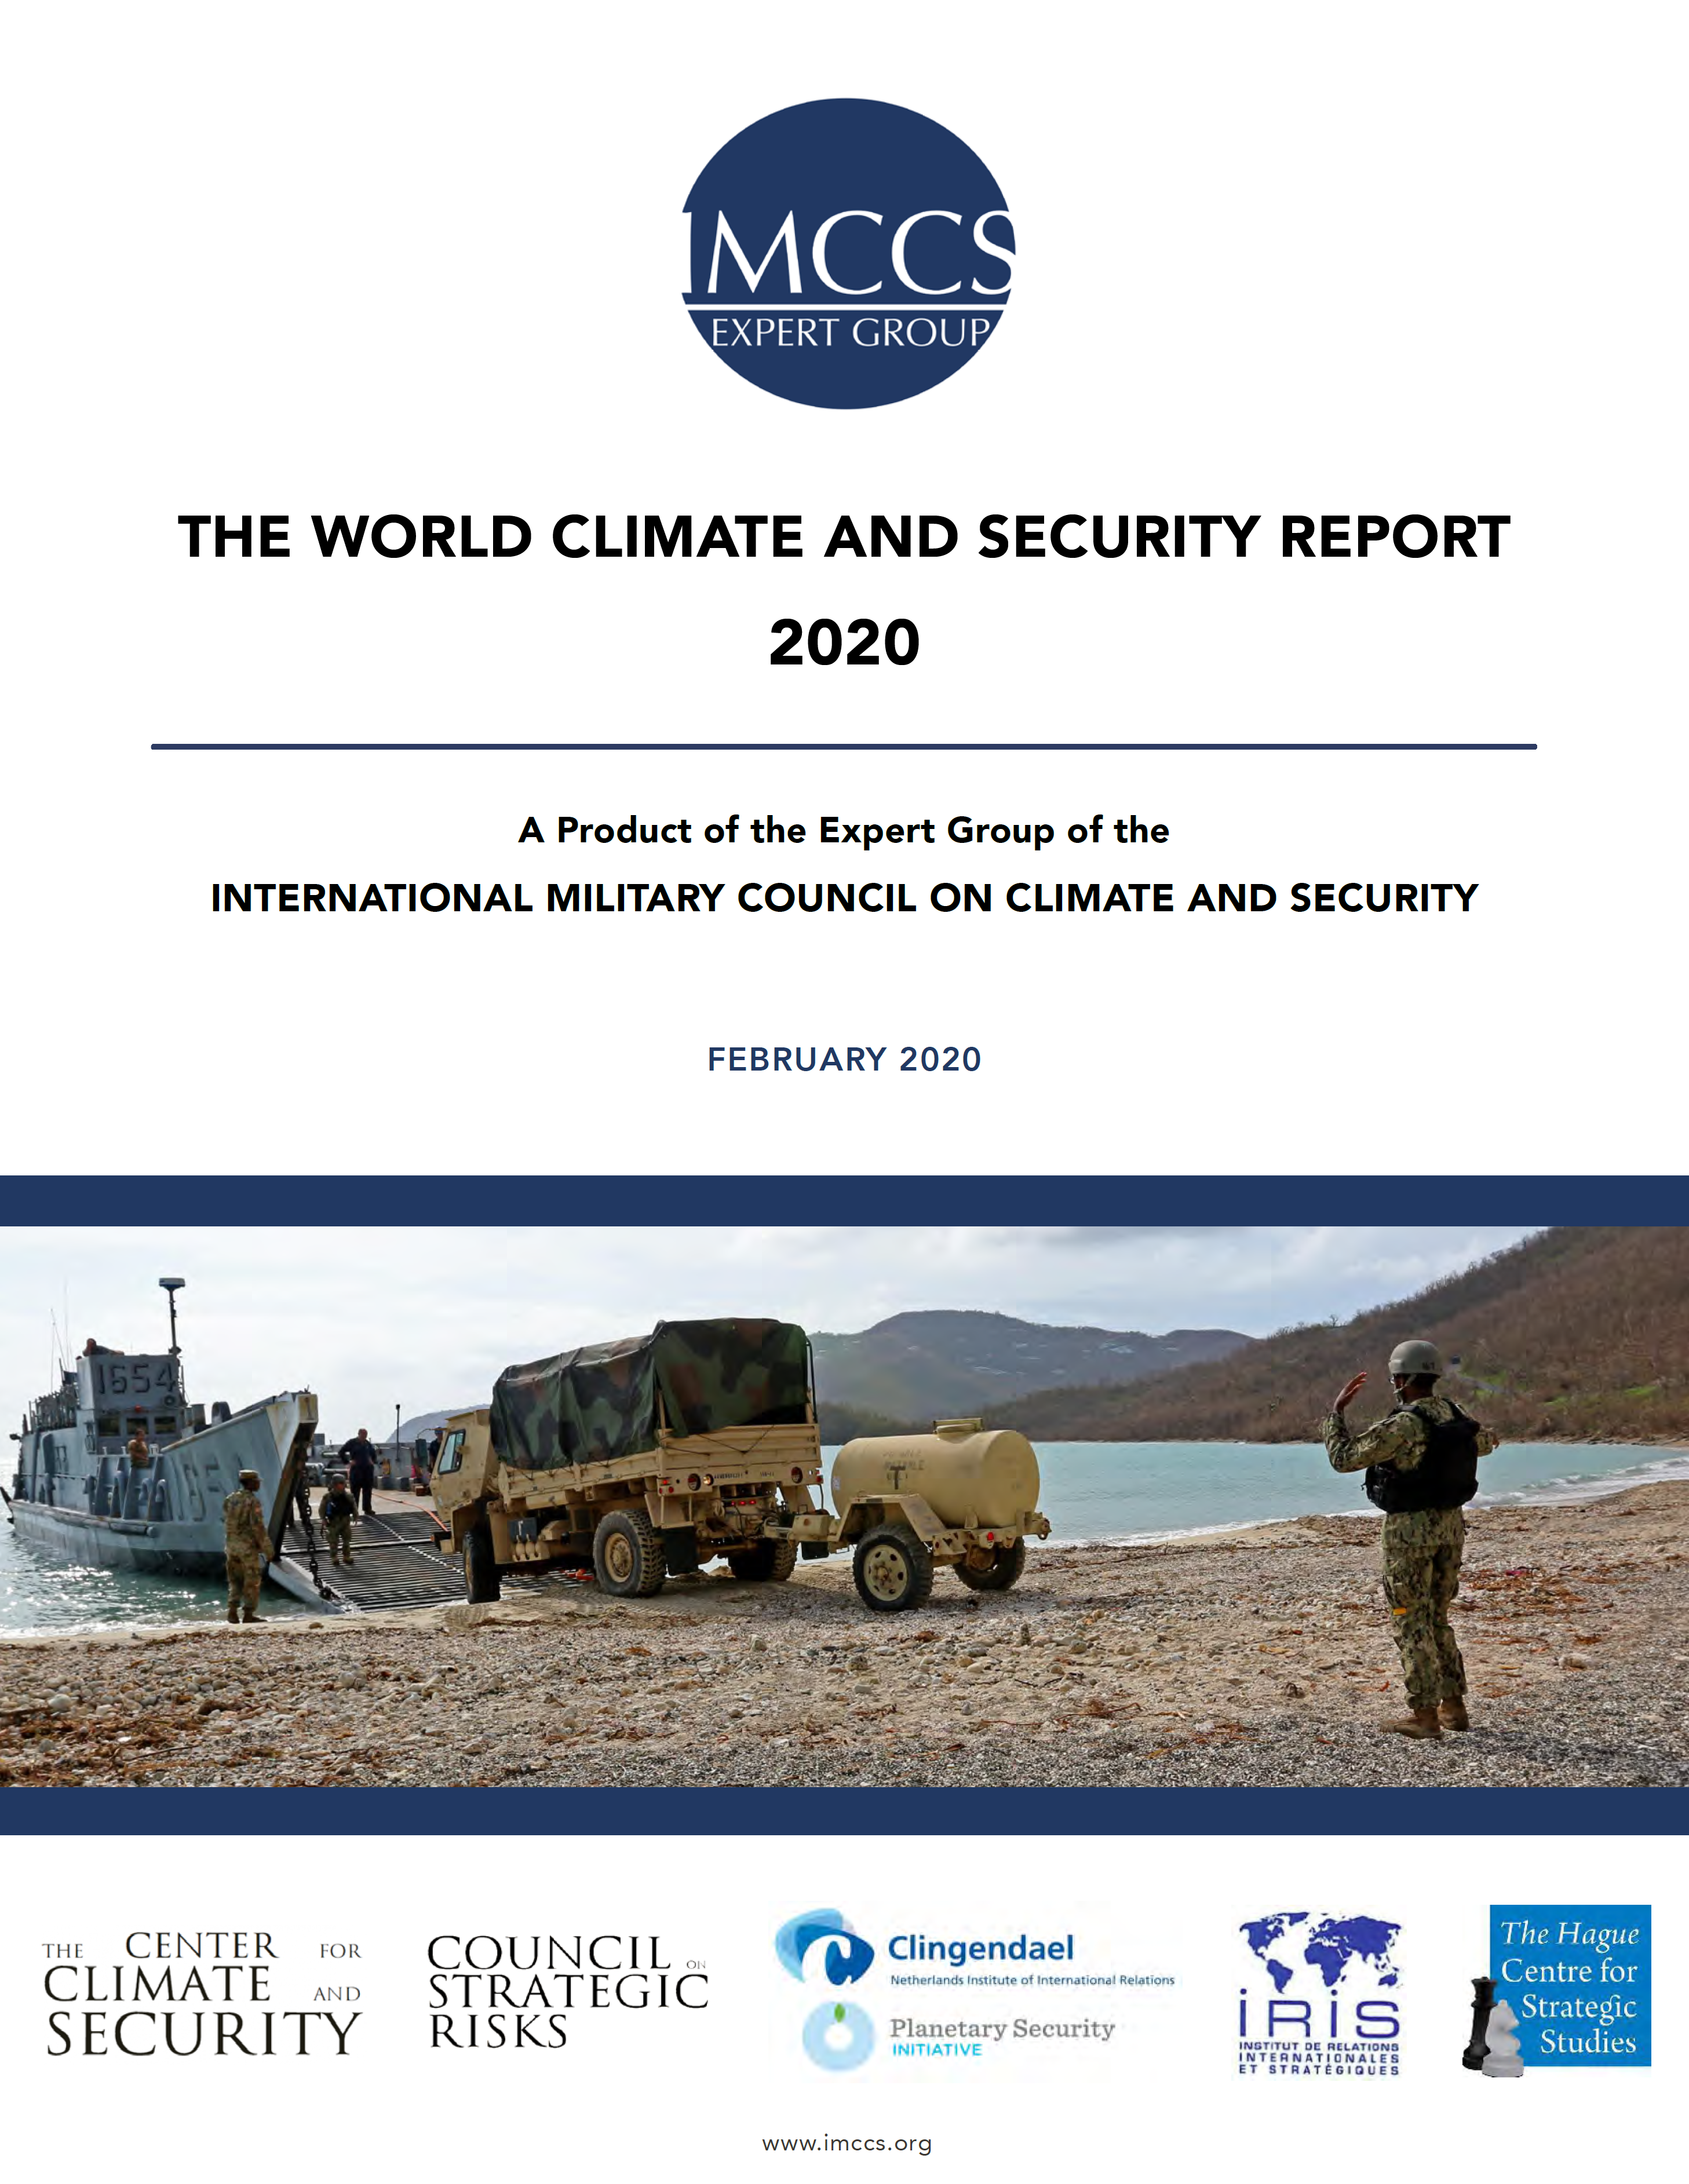 """RELEASE: International Military Council Issues """"World Climate and Security Report 2020"""" at Munich Security Conference"""